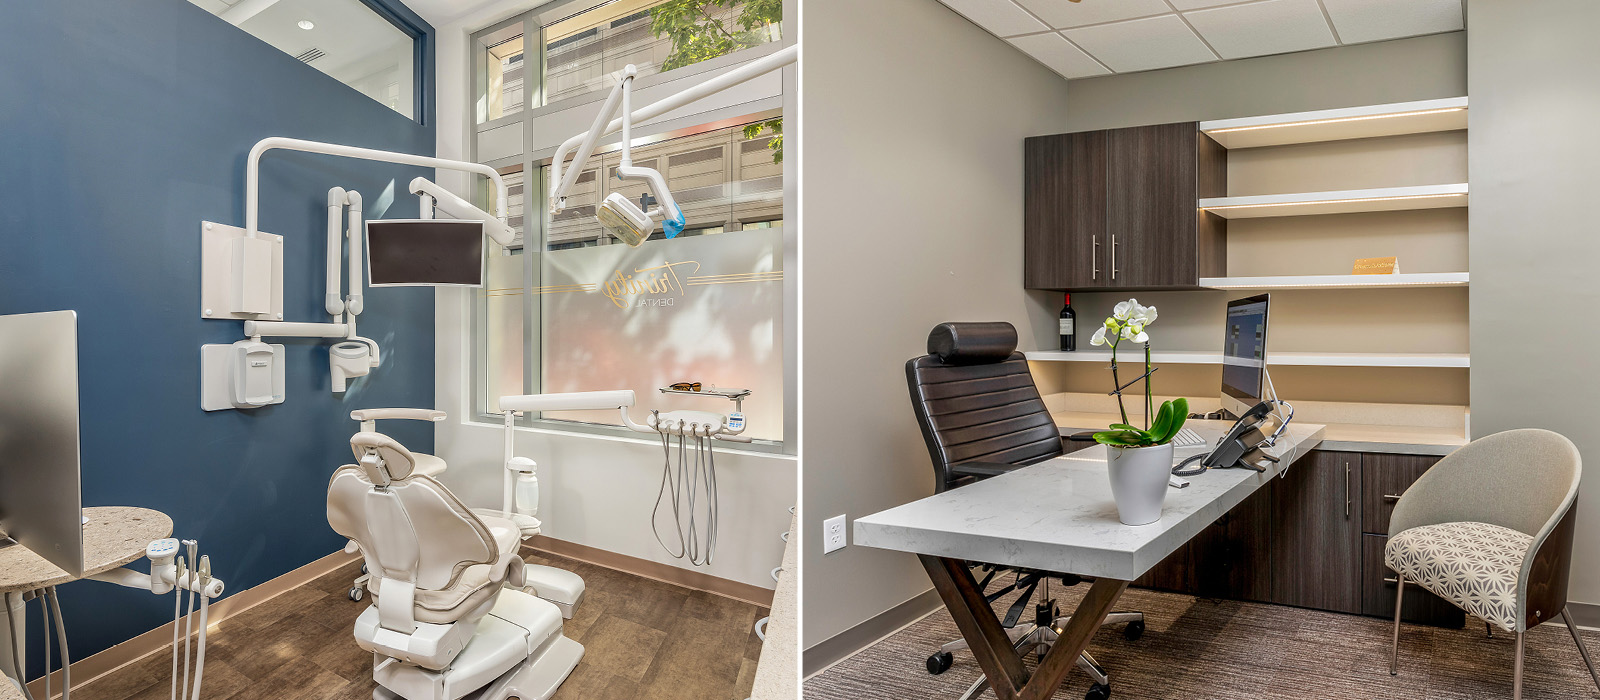 Trinity Dental treatment room and consultation space